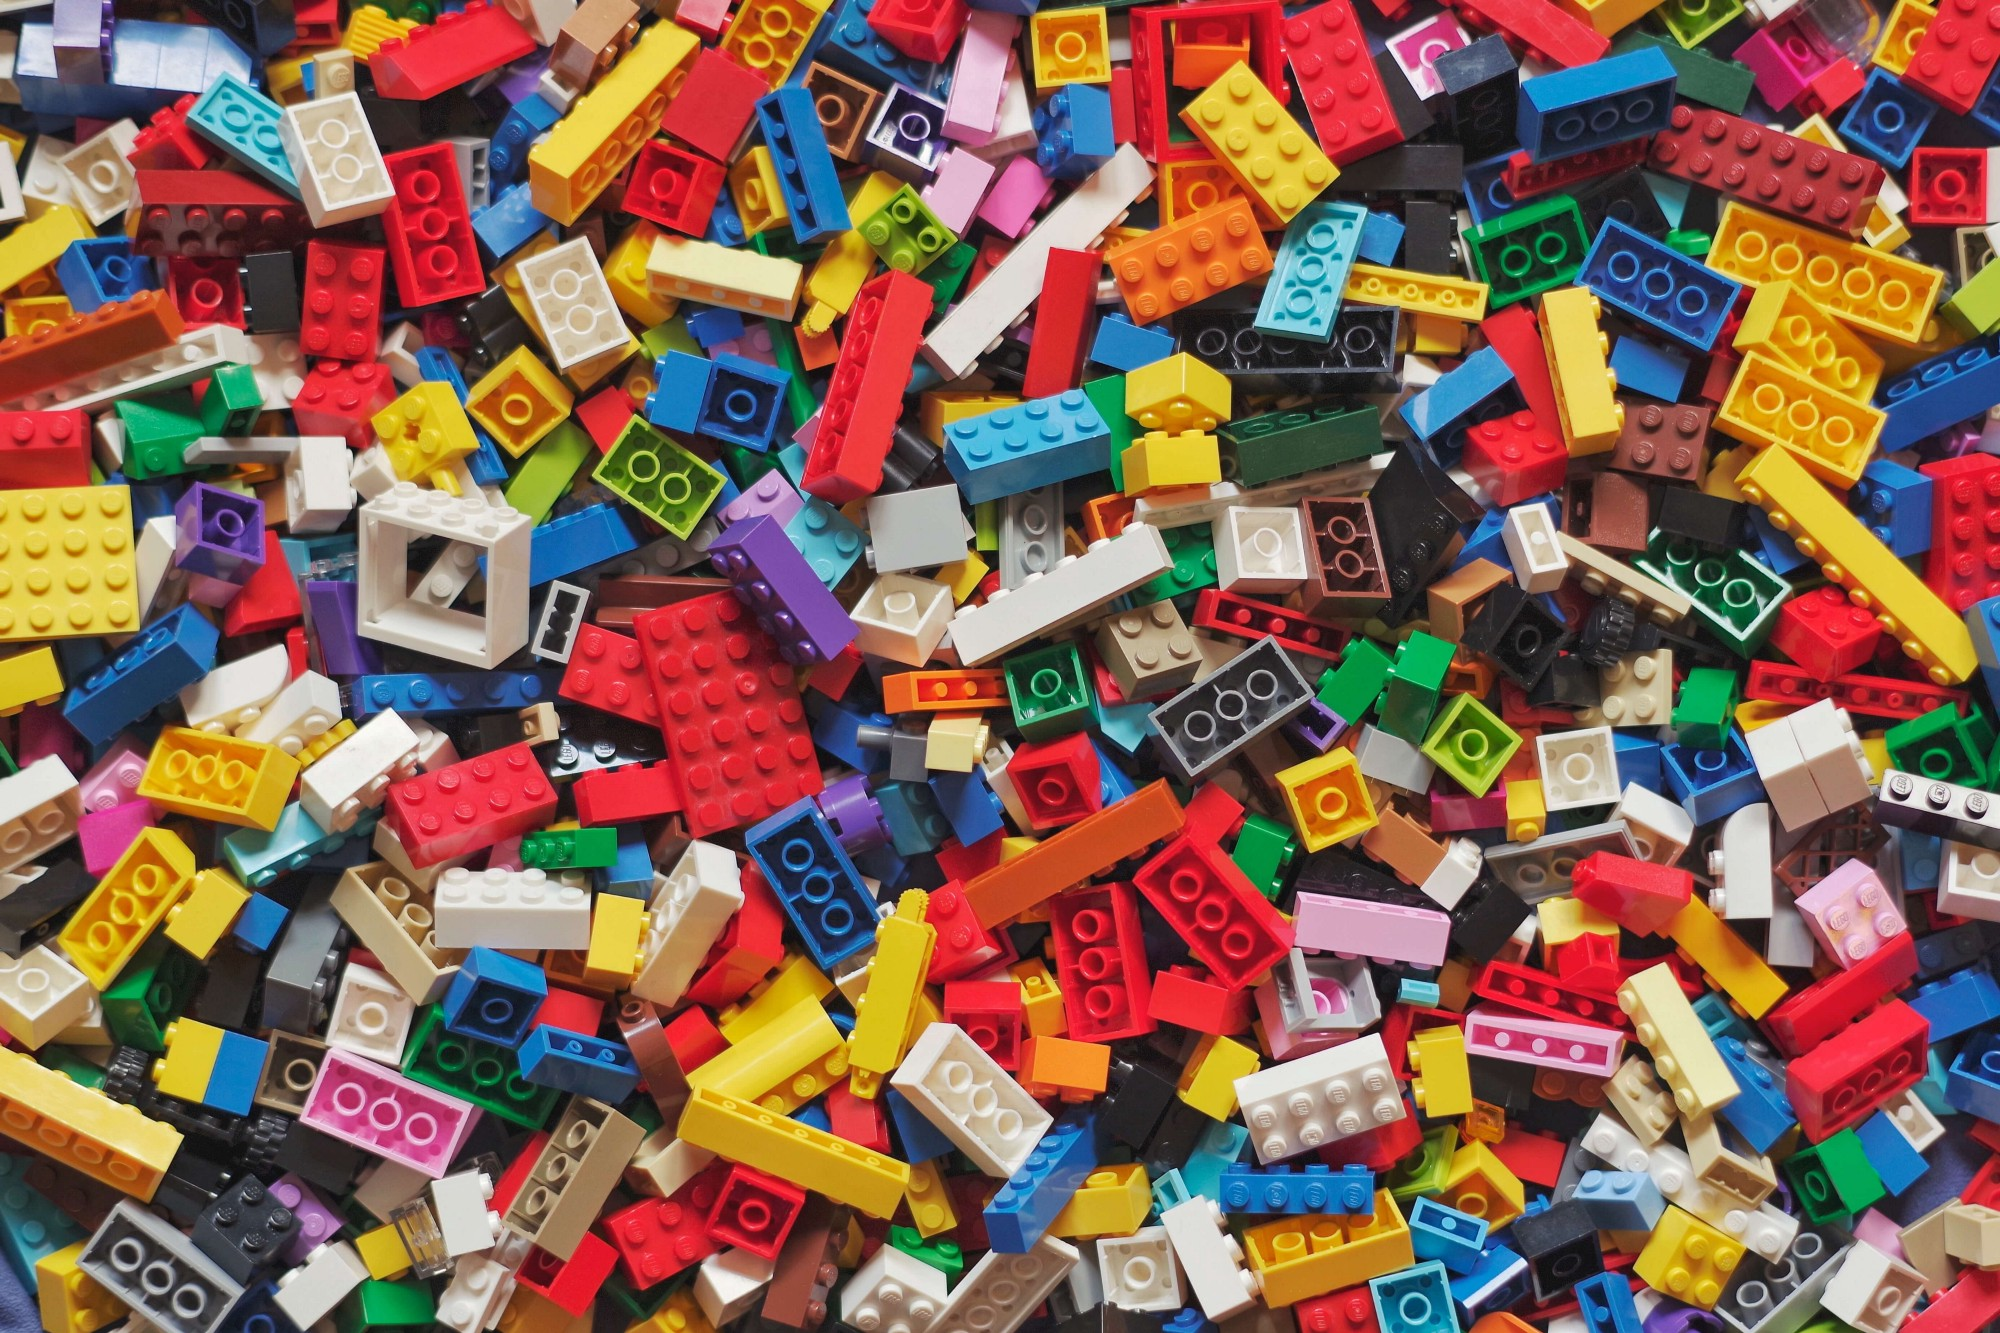 Multi-colored Lego pieces lying one on top of another.